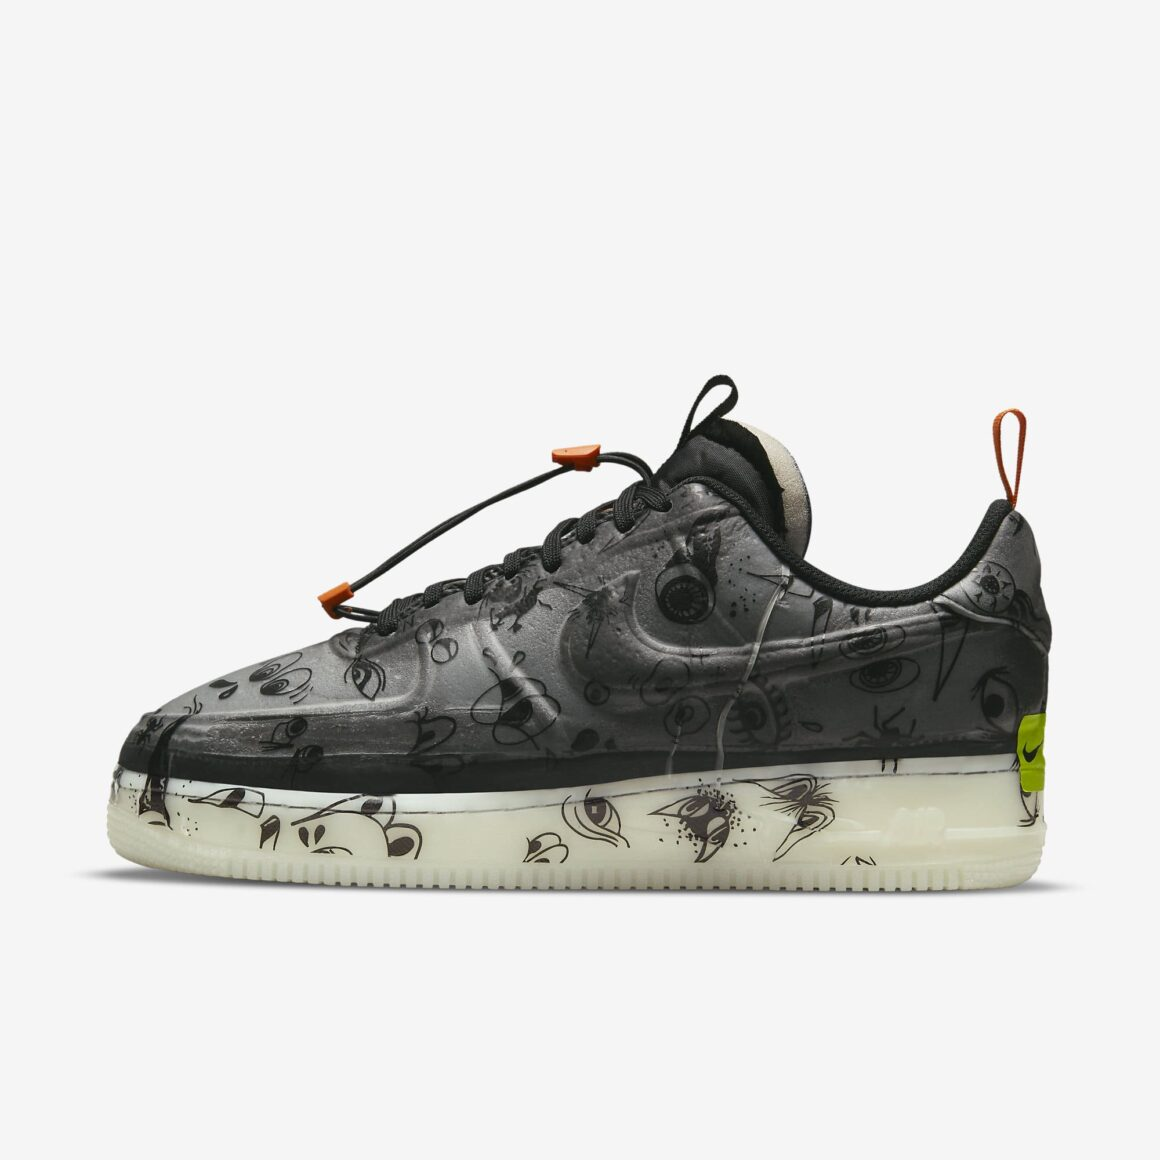 Nike Air Force 1 Experimental Halloween DC8904-001 Lateral